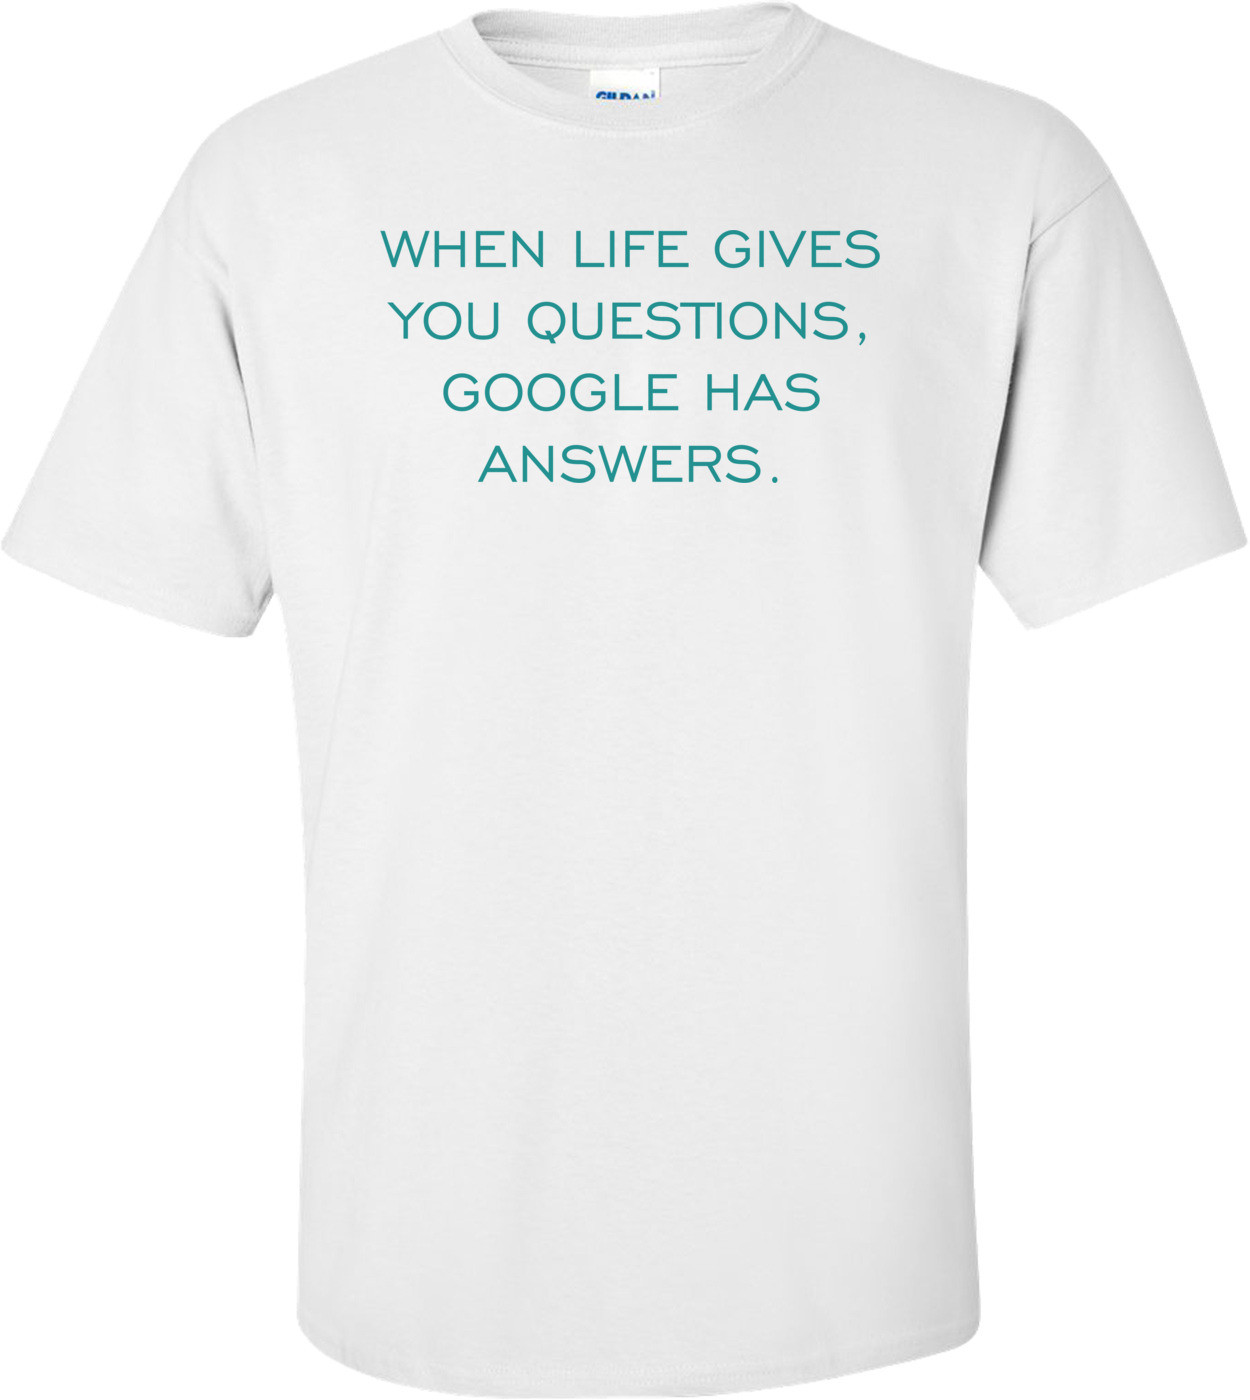 WHEN LIFE GIVES YOU QUESTIONS, GOOGLE HAS ANSWERS. Shirt